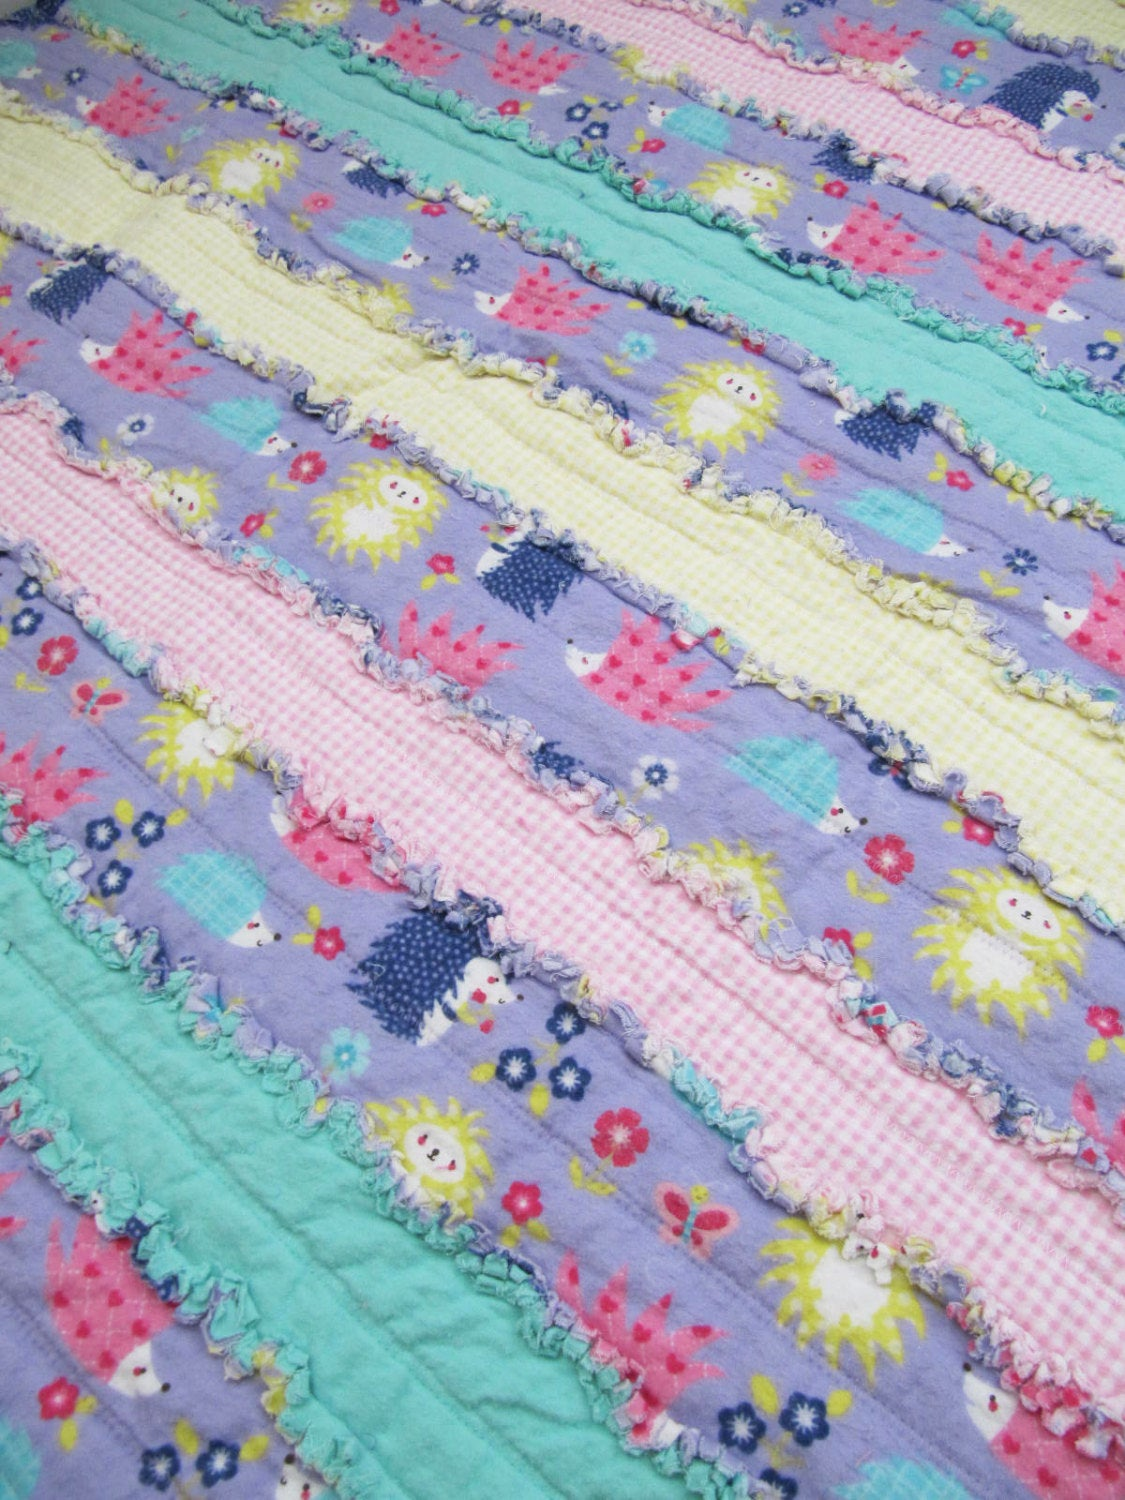 Purple Porcupine Baby Girl Rag Quilt - lavender, pink yellow gingham, mint green, jelly roll rag quilt